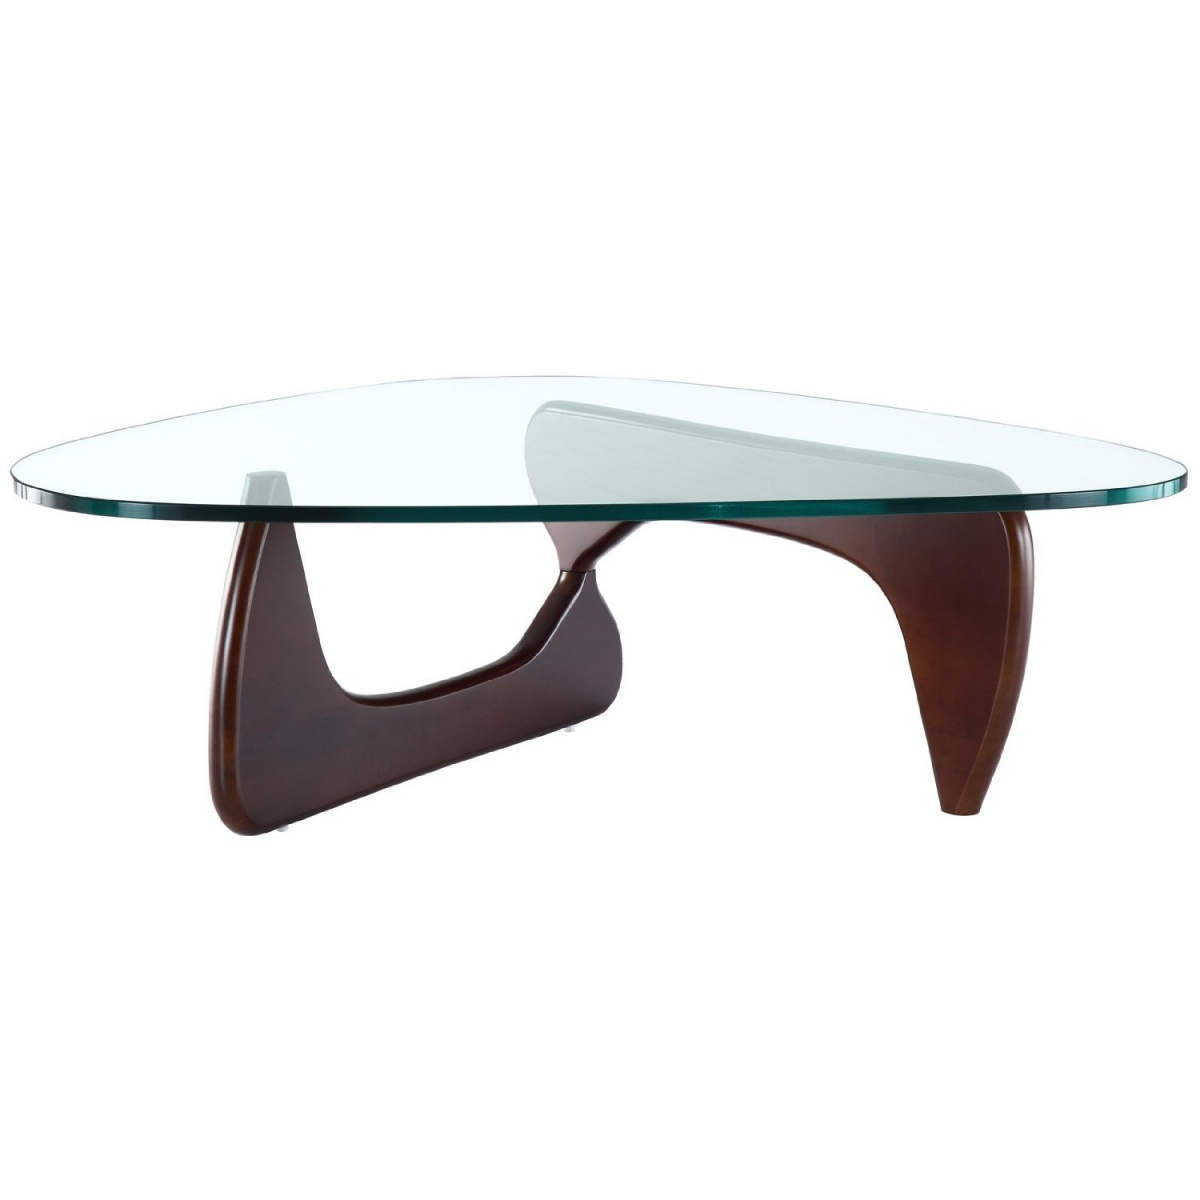 modern-wood-coffee-table-designs-you-keep-your-things-organized-and-the-table-top-clear-is-this-lovely-recycled-wood-iron-and-pine (Image 10 of 10)